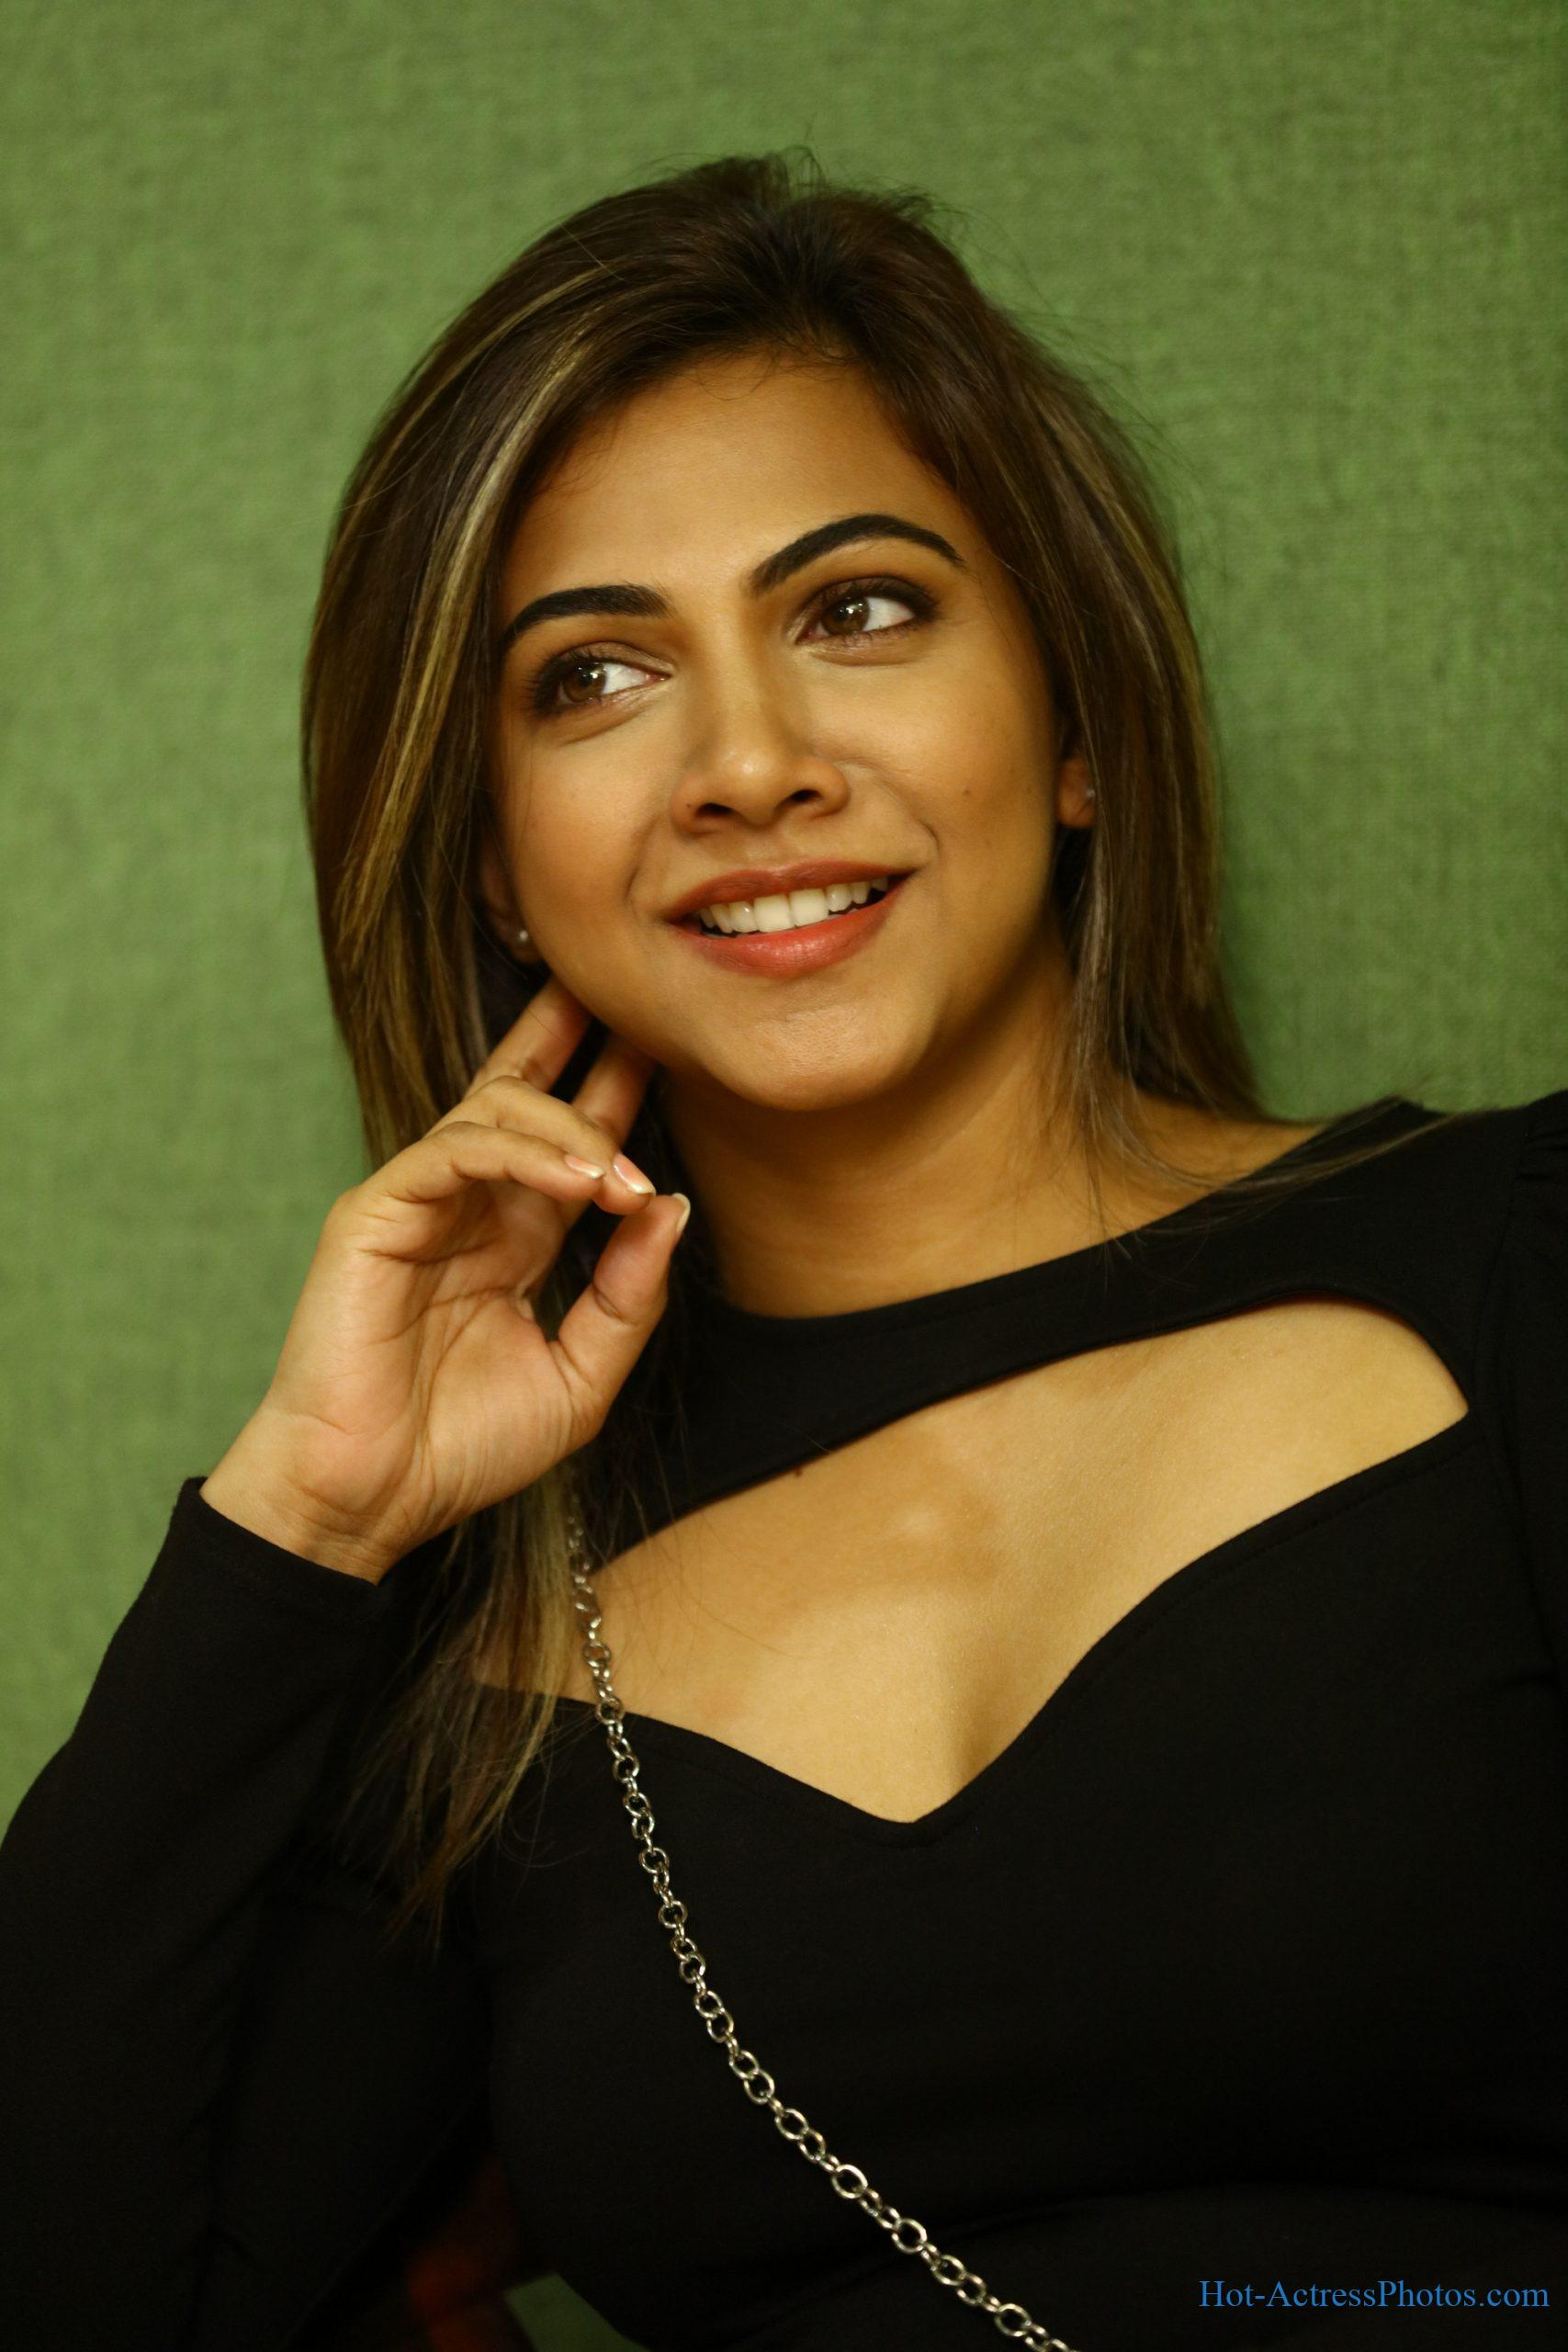 Madonna Sebastian Hot Photos At Vaanam Kottatum Audio launch